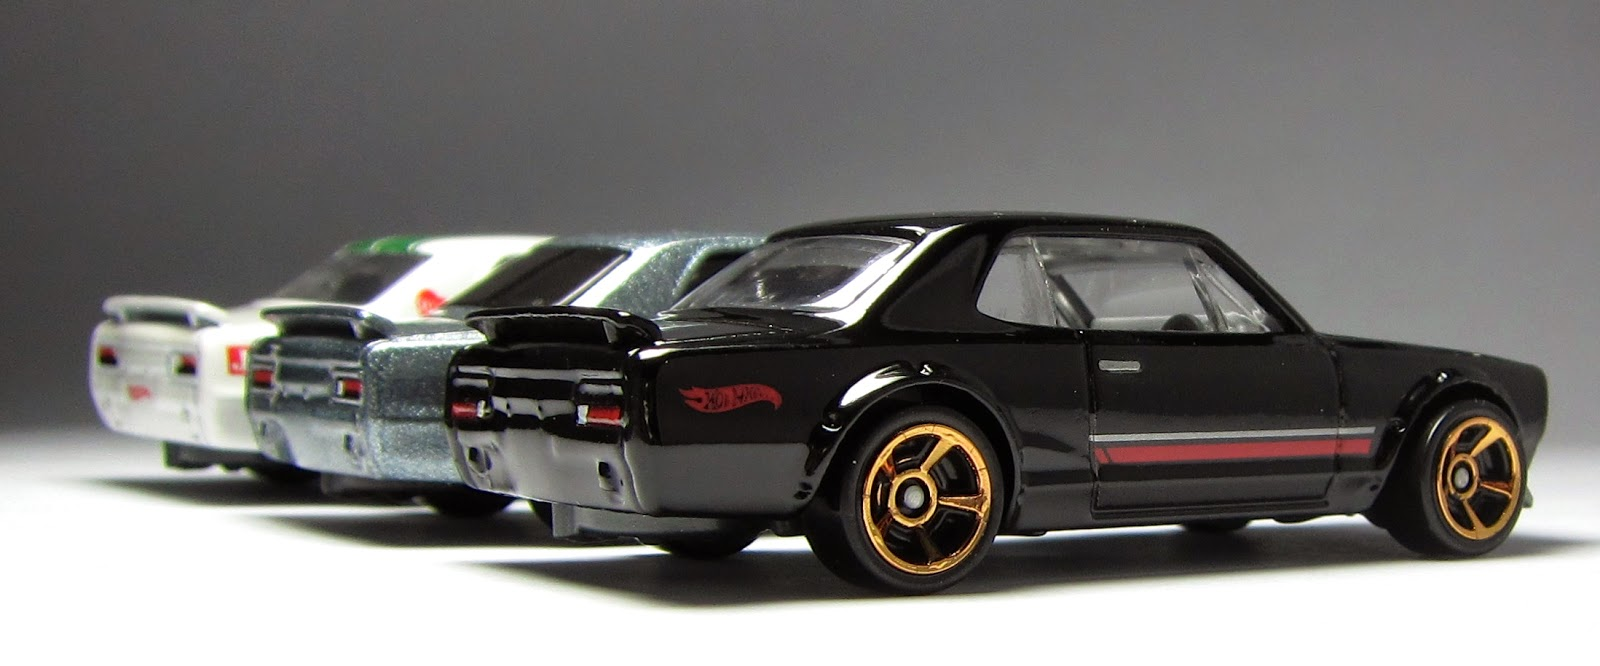 concepts car and skyline - photo #8